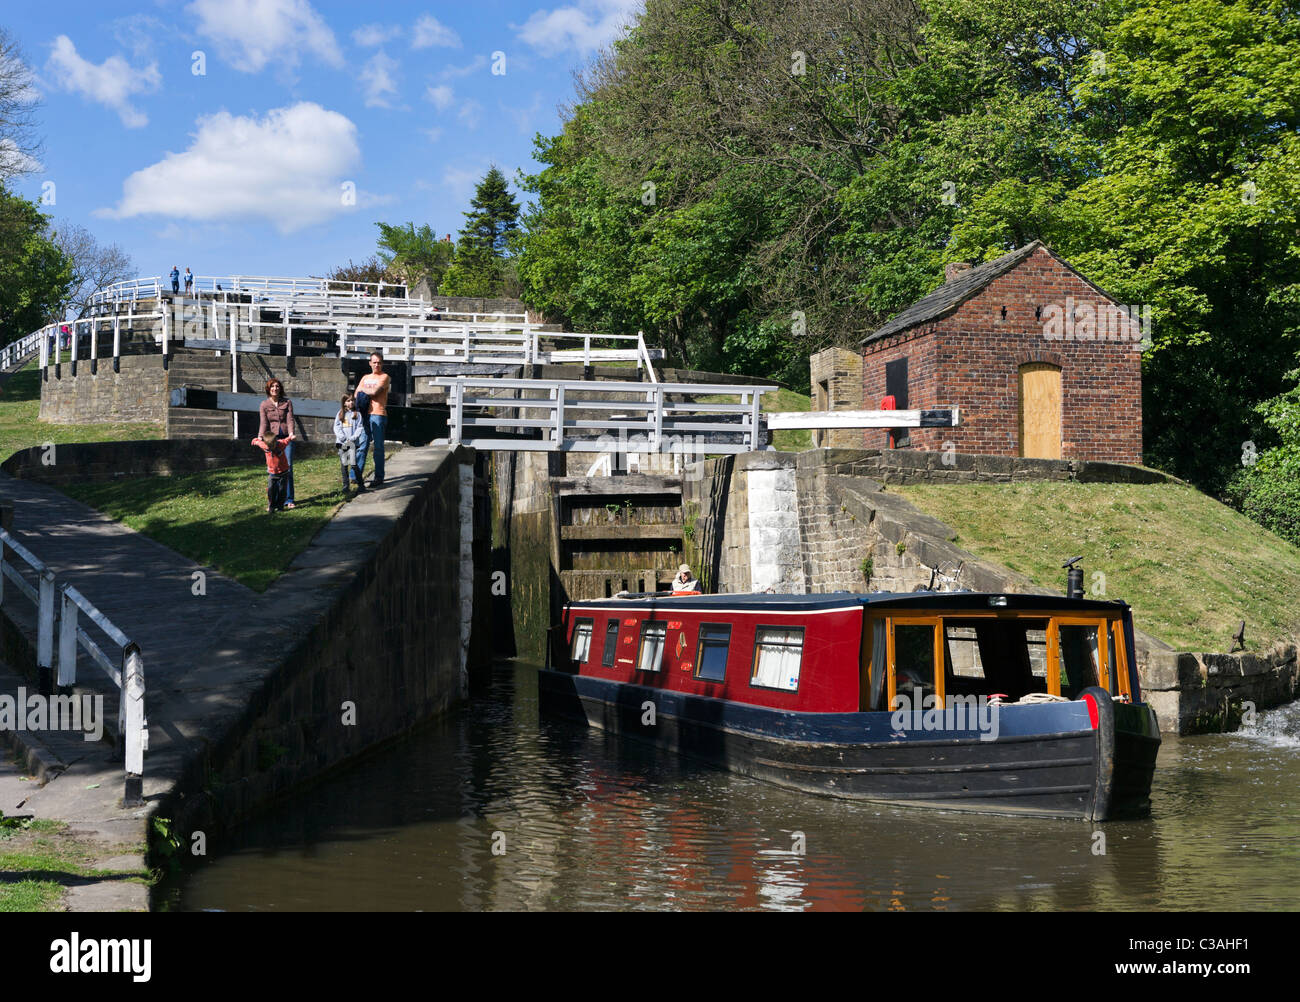 Narrowboat leaving the last of the Five Rise Locks on the Leeds and Liverpool Canal, Bingley, West Yorkshire, UK - Stock Image